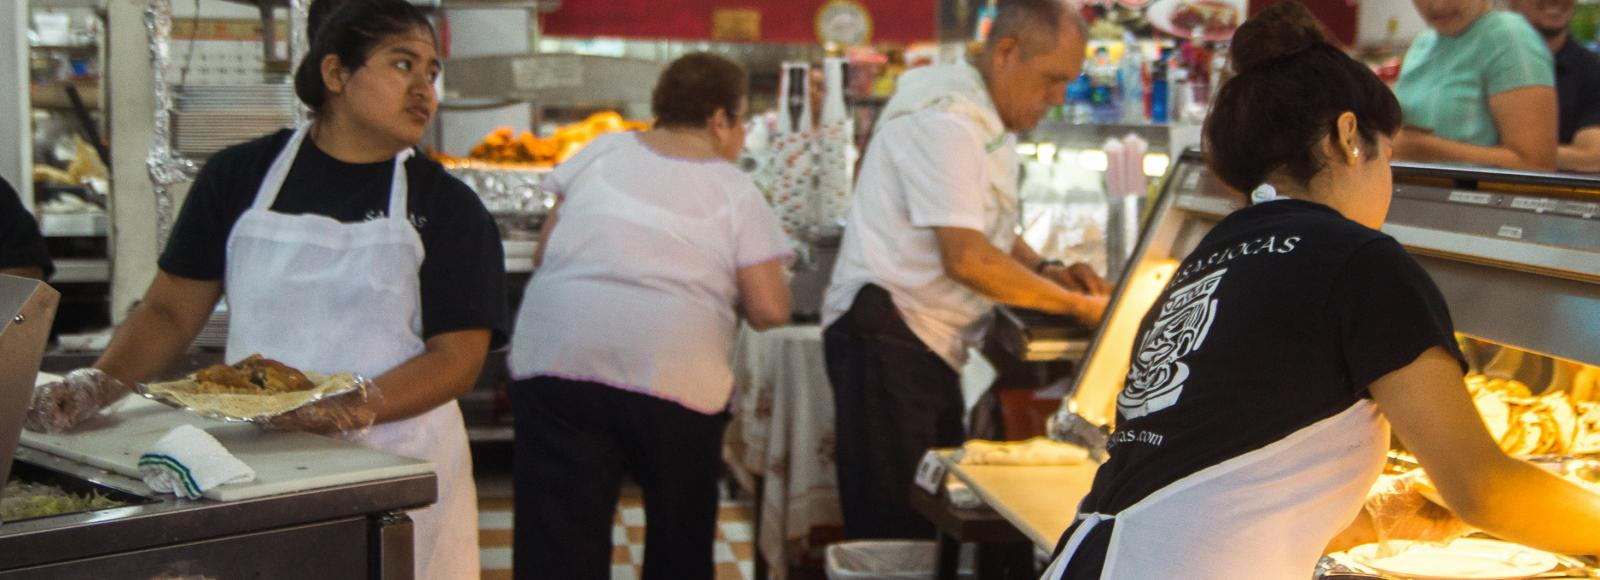 The De León family works with their employees to serve lunch to hungry customers.